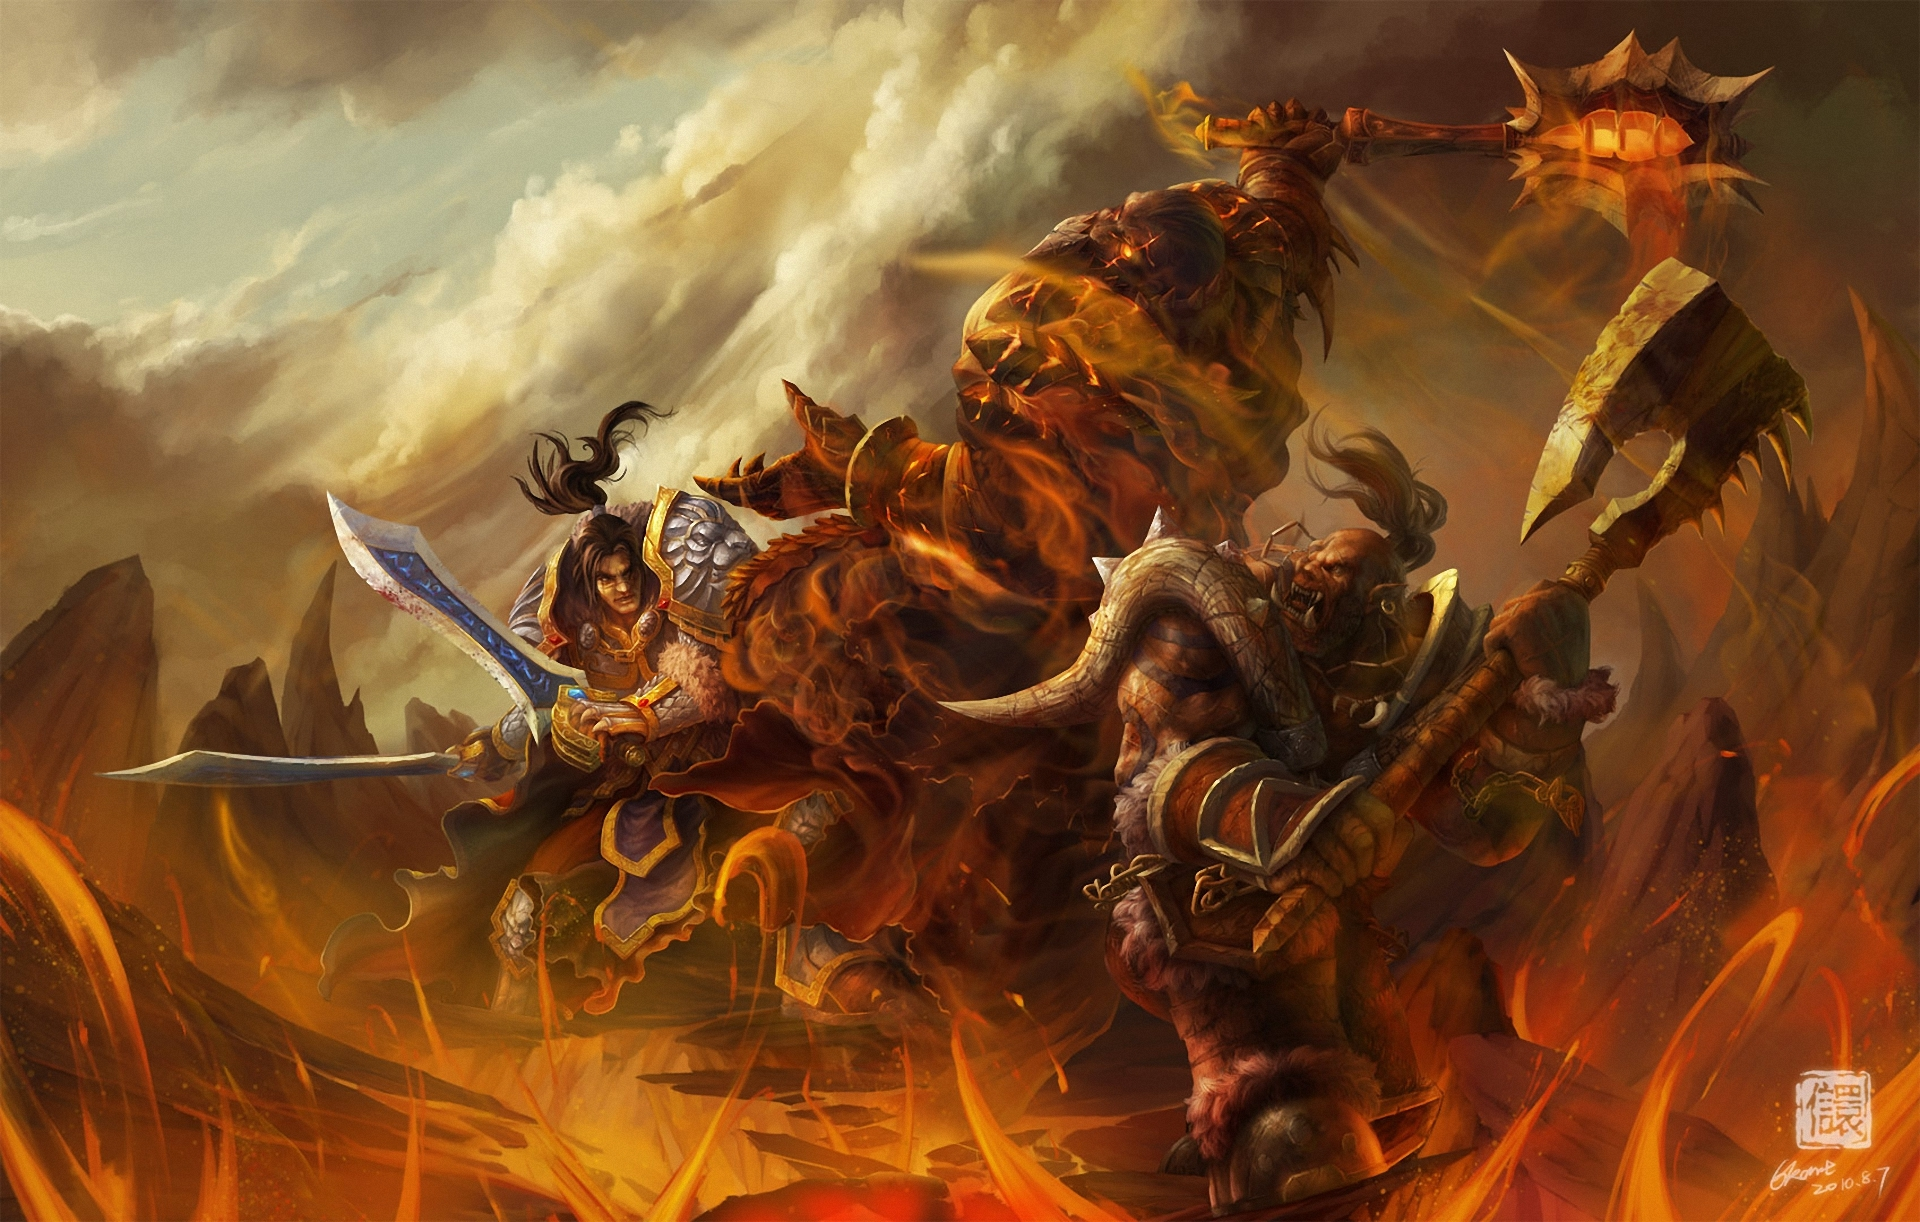 of WarCraft WoW Warrior Orc Battle Monster axe Games fantasy wallpaper 1920x1222